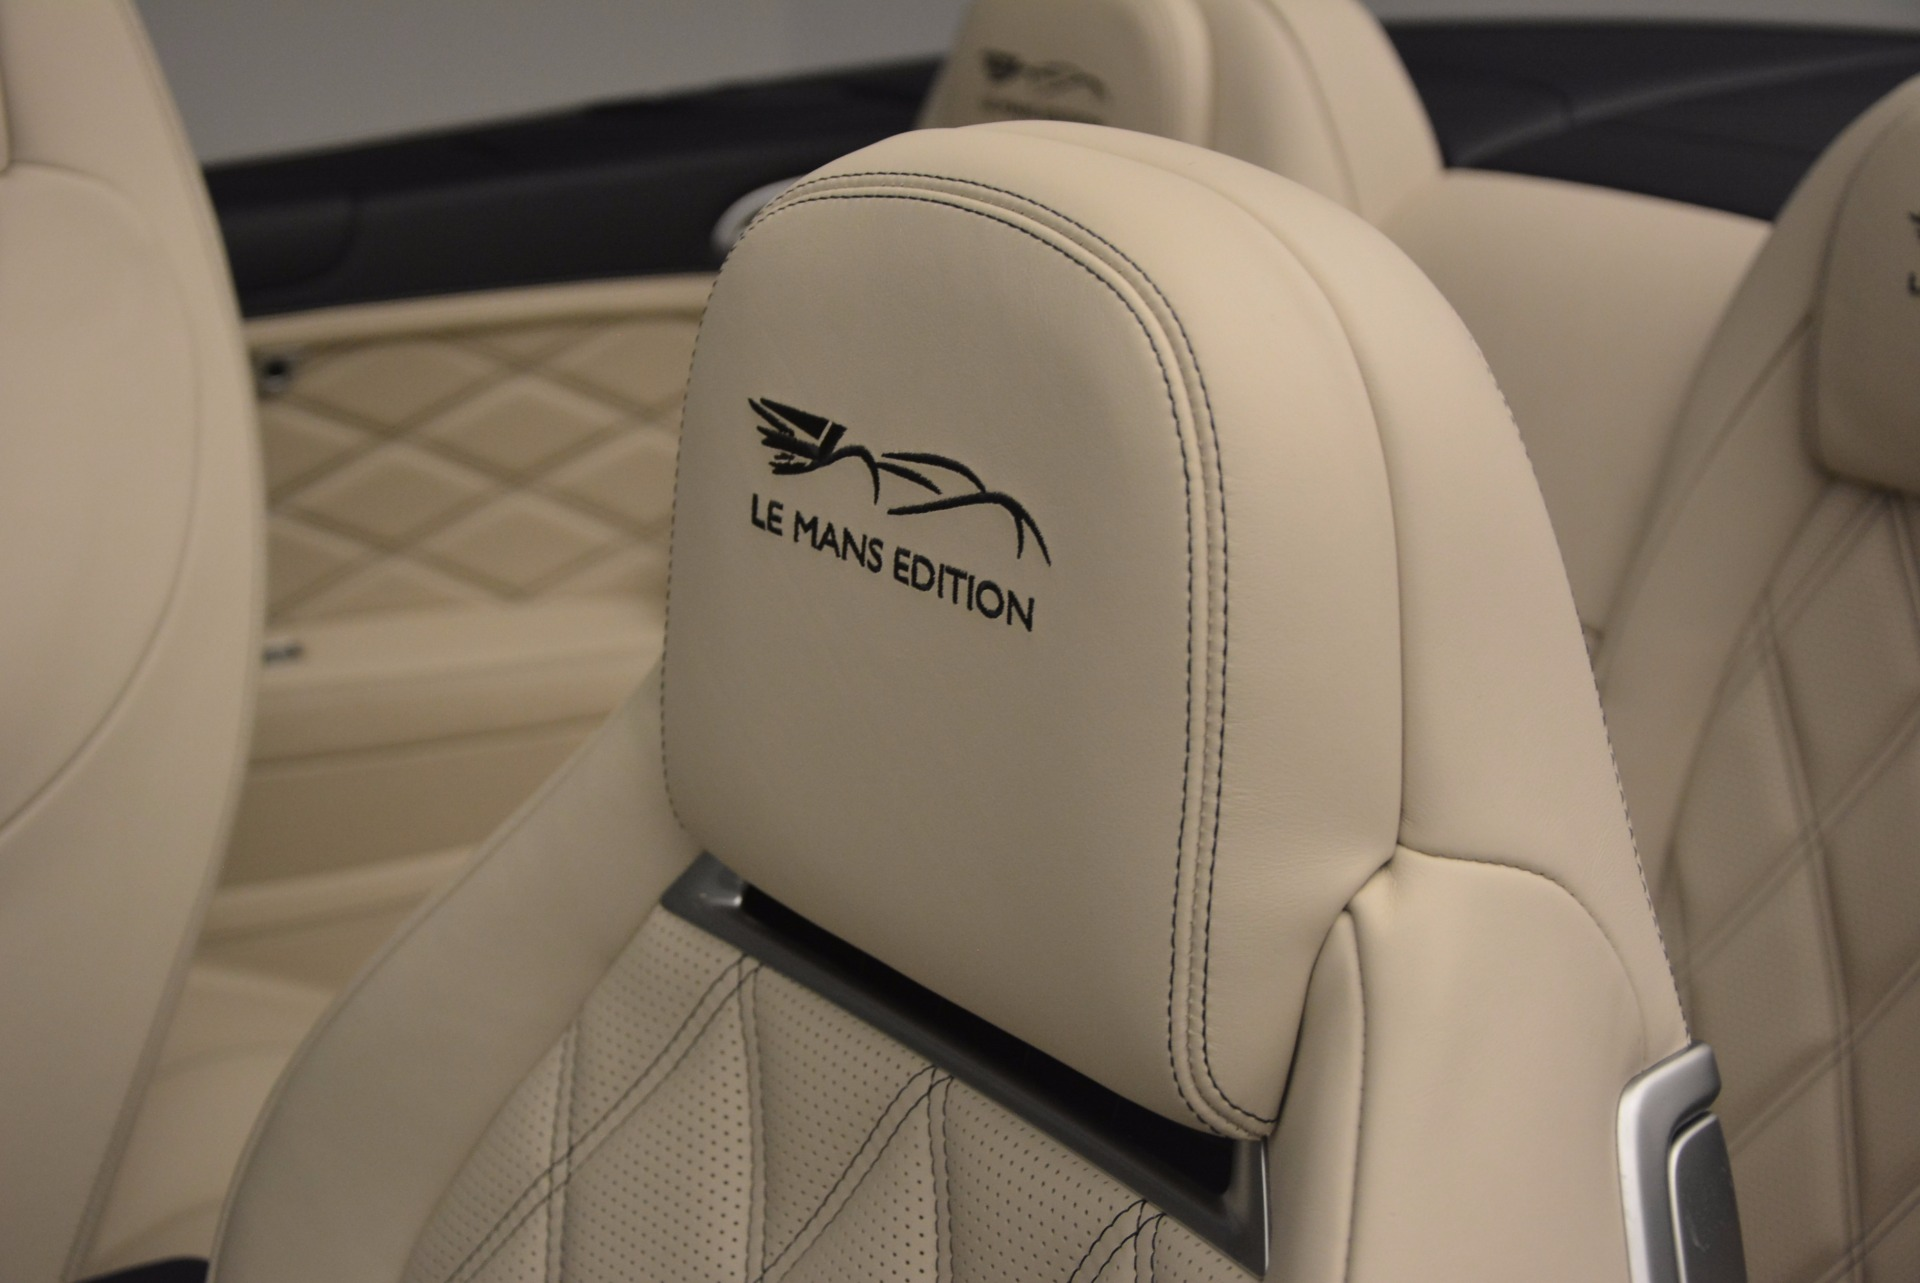 Used 2013 Bentley Continental GT V8 Le Mans Edition, 1 of 48 For Sale In Greenwich, CT 1288_p36